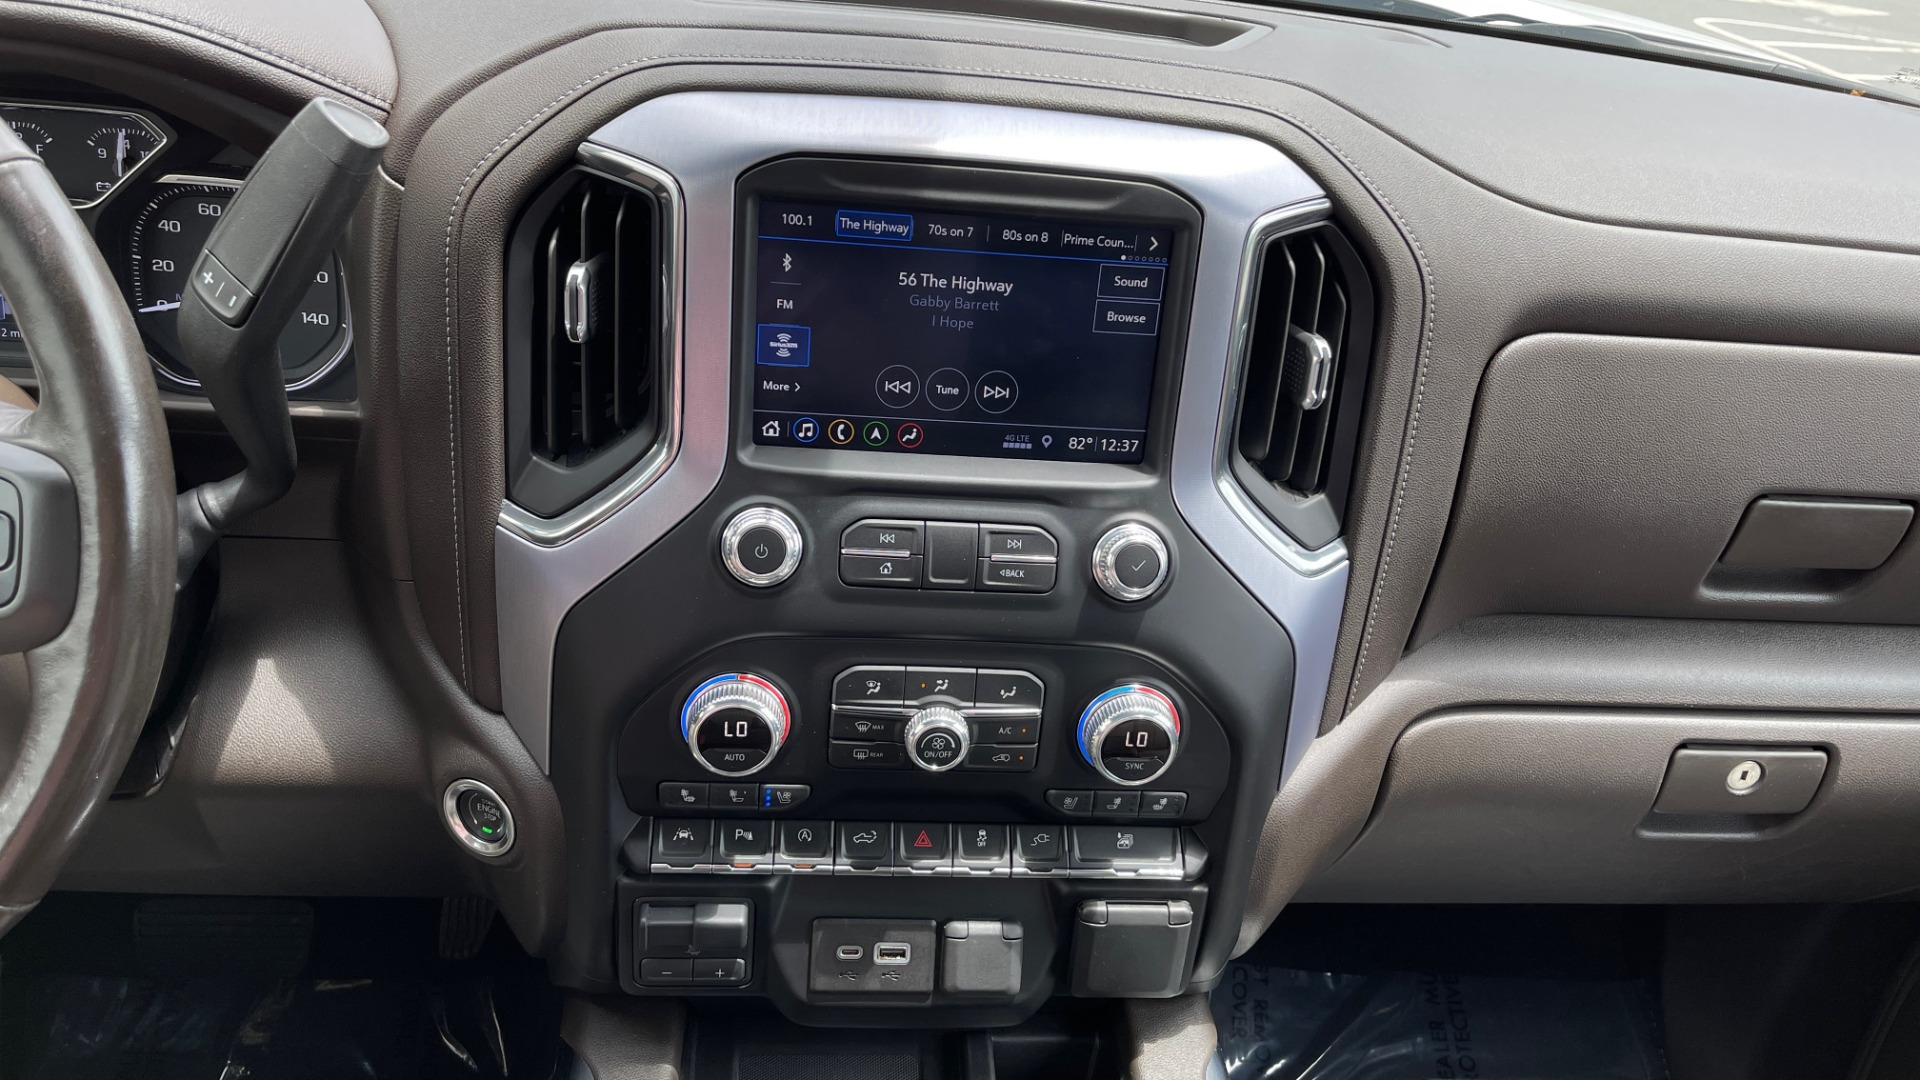 Used 2019 GMC SIERRA 1500 SLT 4X4 CREWCAB / 5.3L V8 / 8-SPD AUTO / NAV / BOSE / REARVIEW for sale $49,999 at Formula Imports in Charlotte NC 28227 50